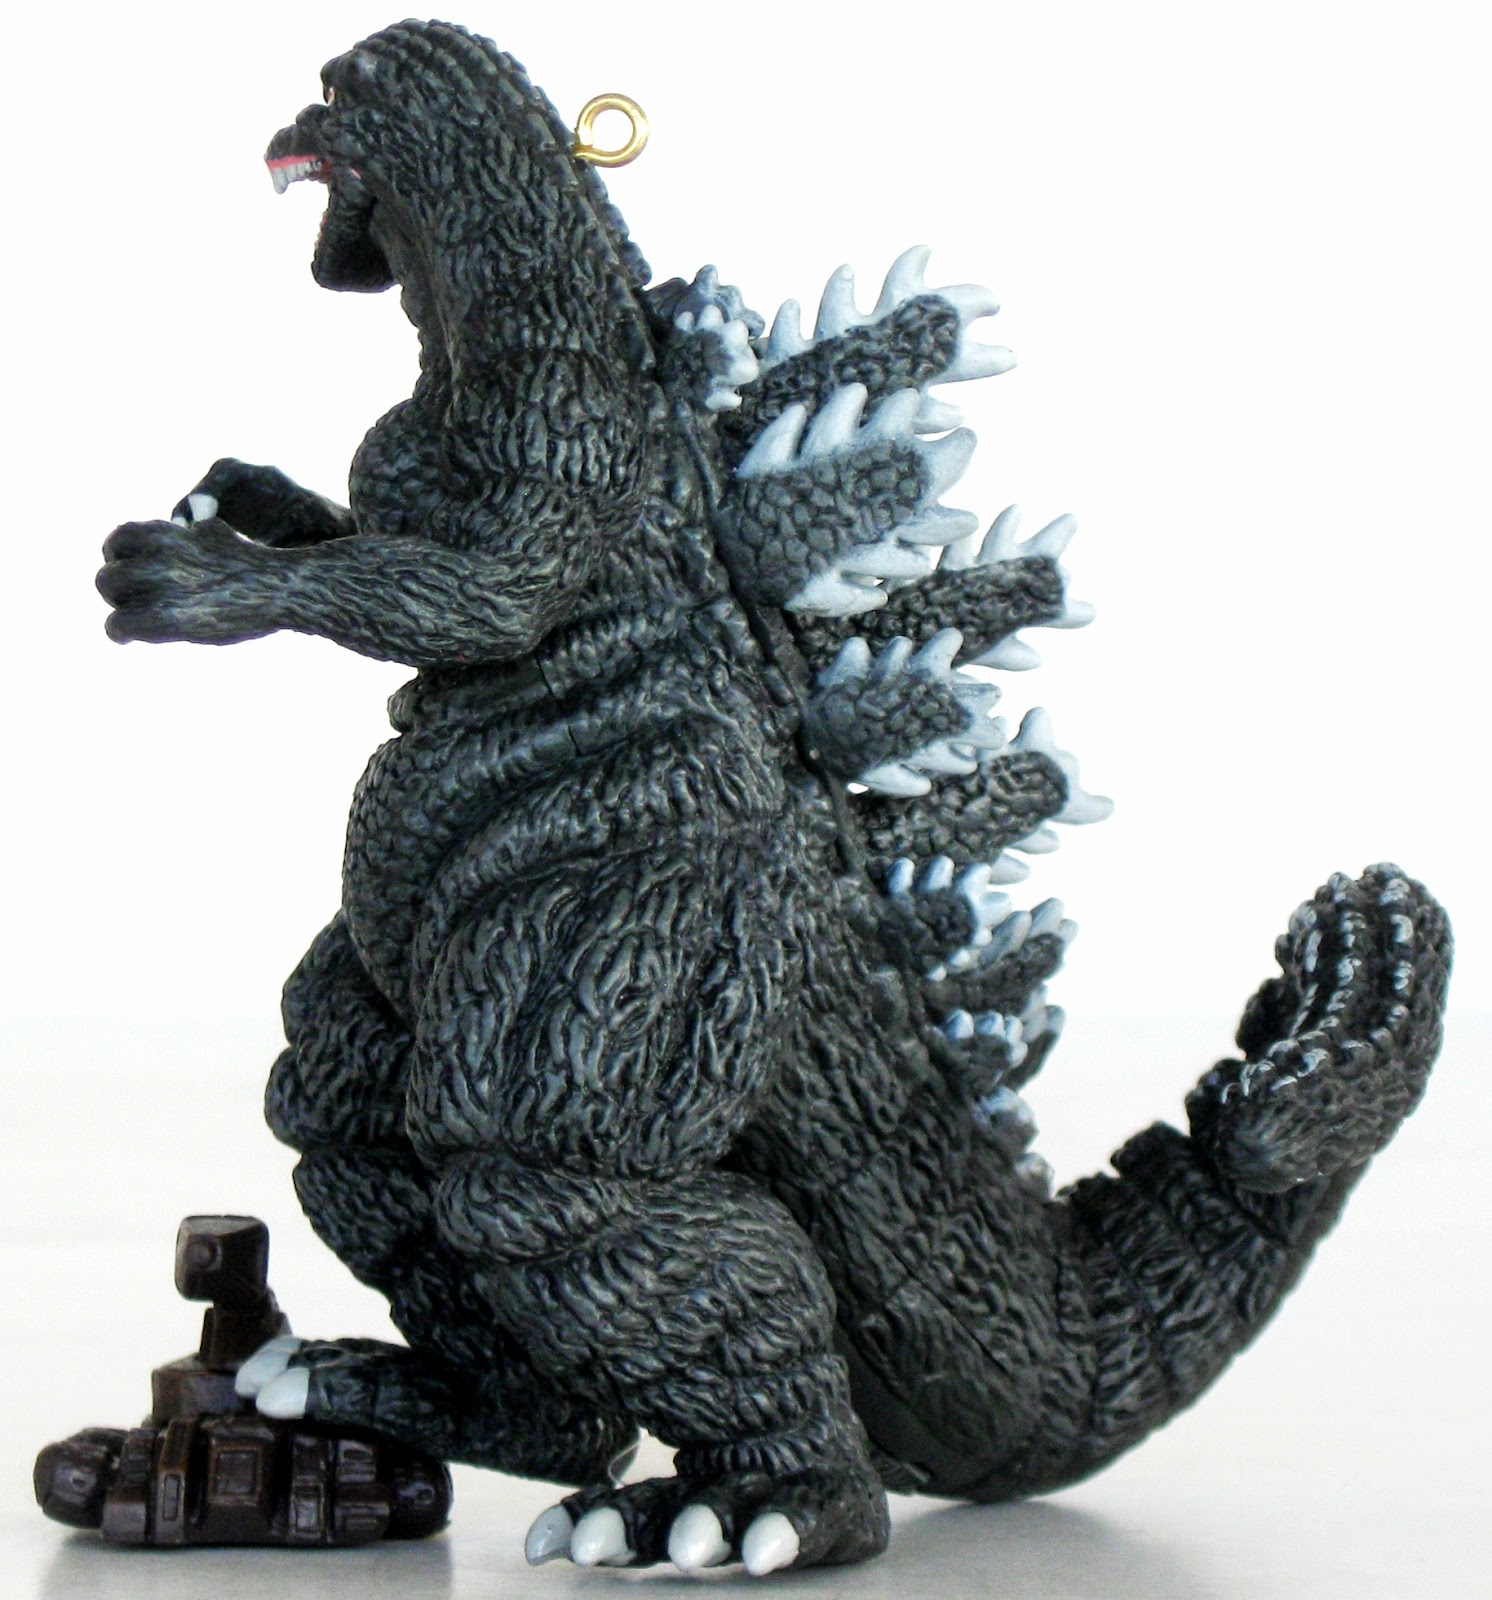 Toys And Stuff American Greetings 2012 Godzilla Ornament W Sound